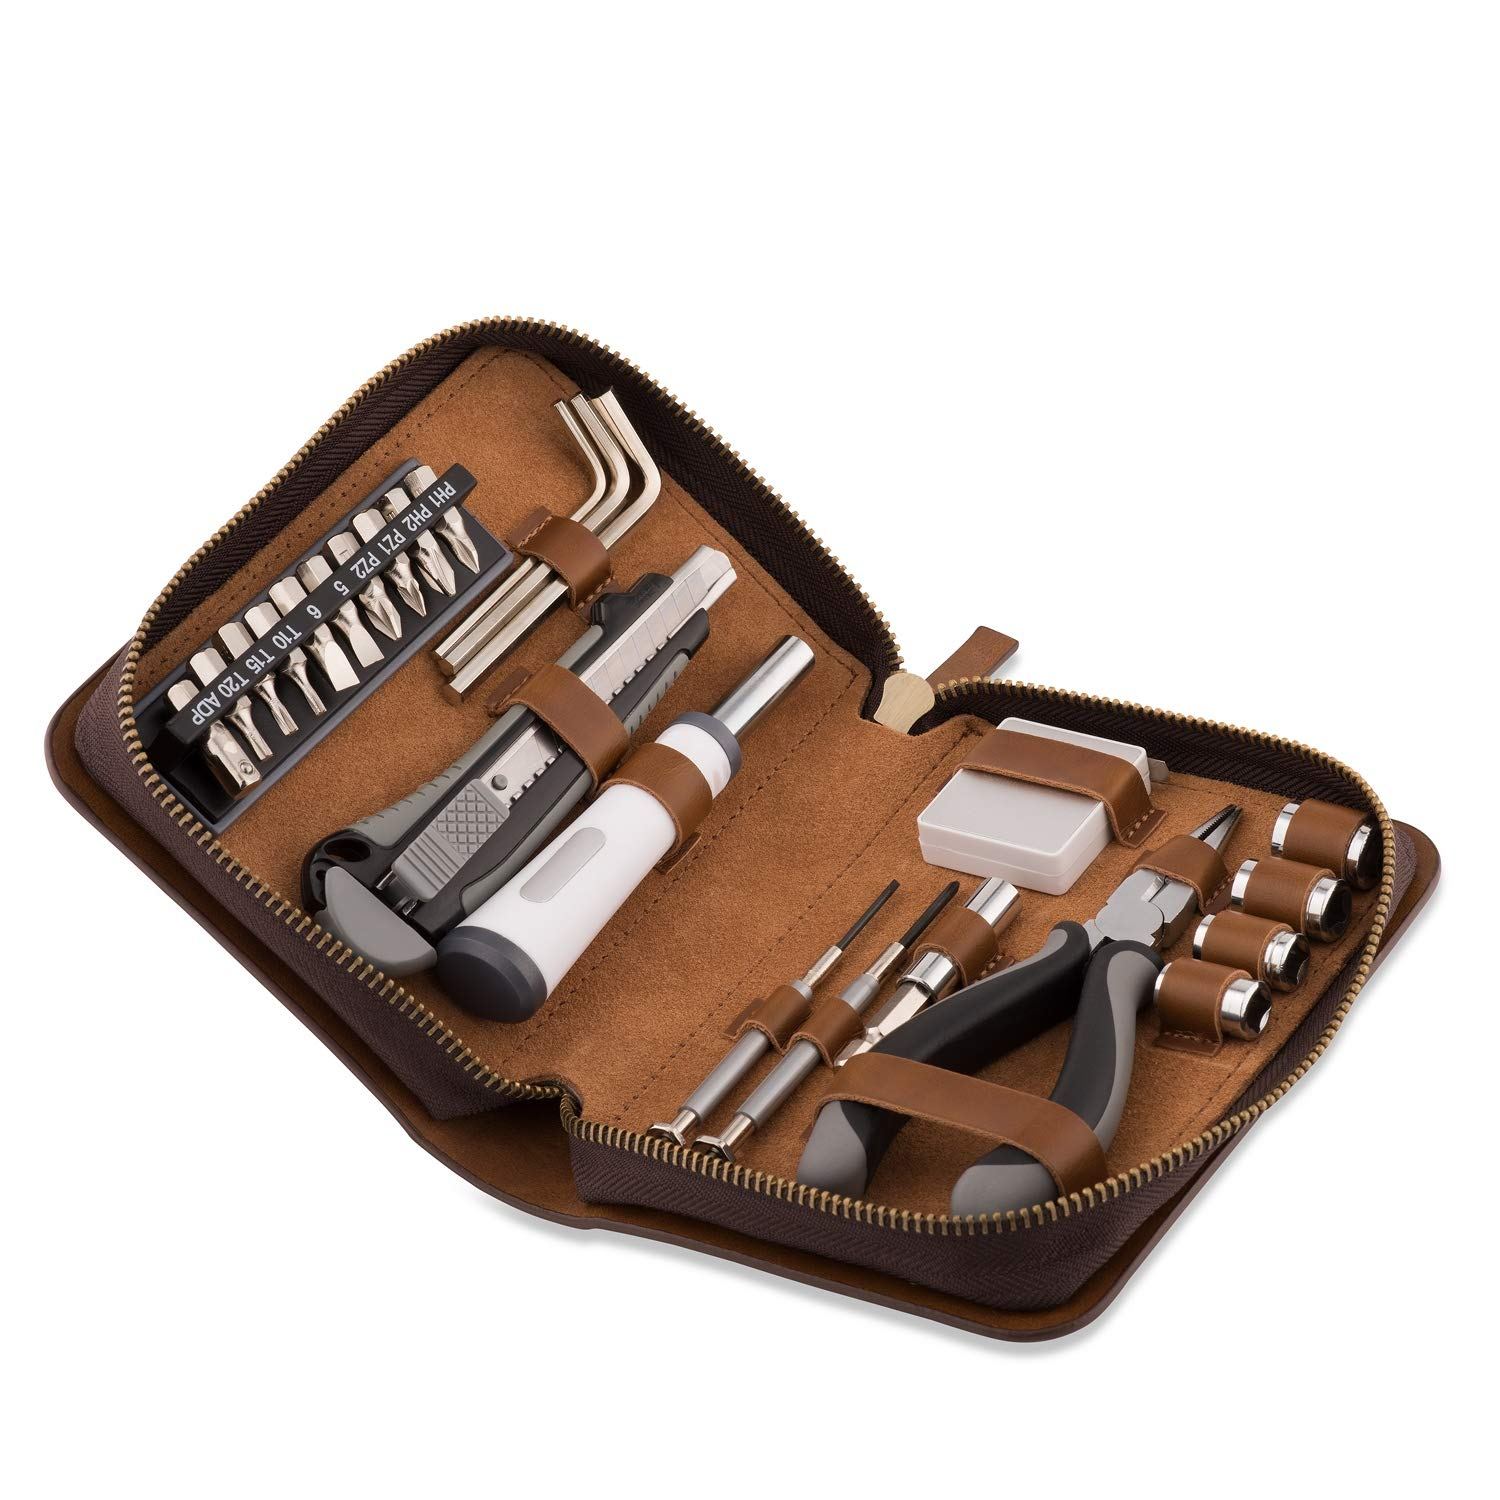 Things Remembered Personalized 24-Piece Leather Travel Tool Set